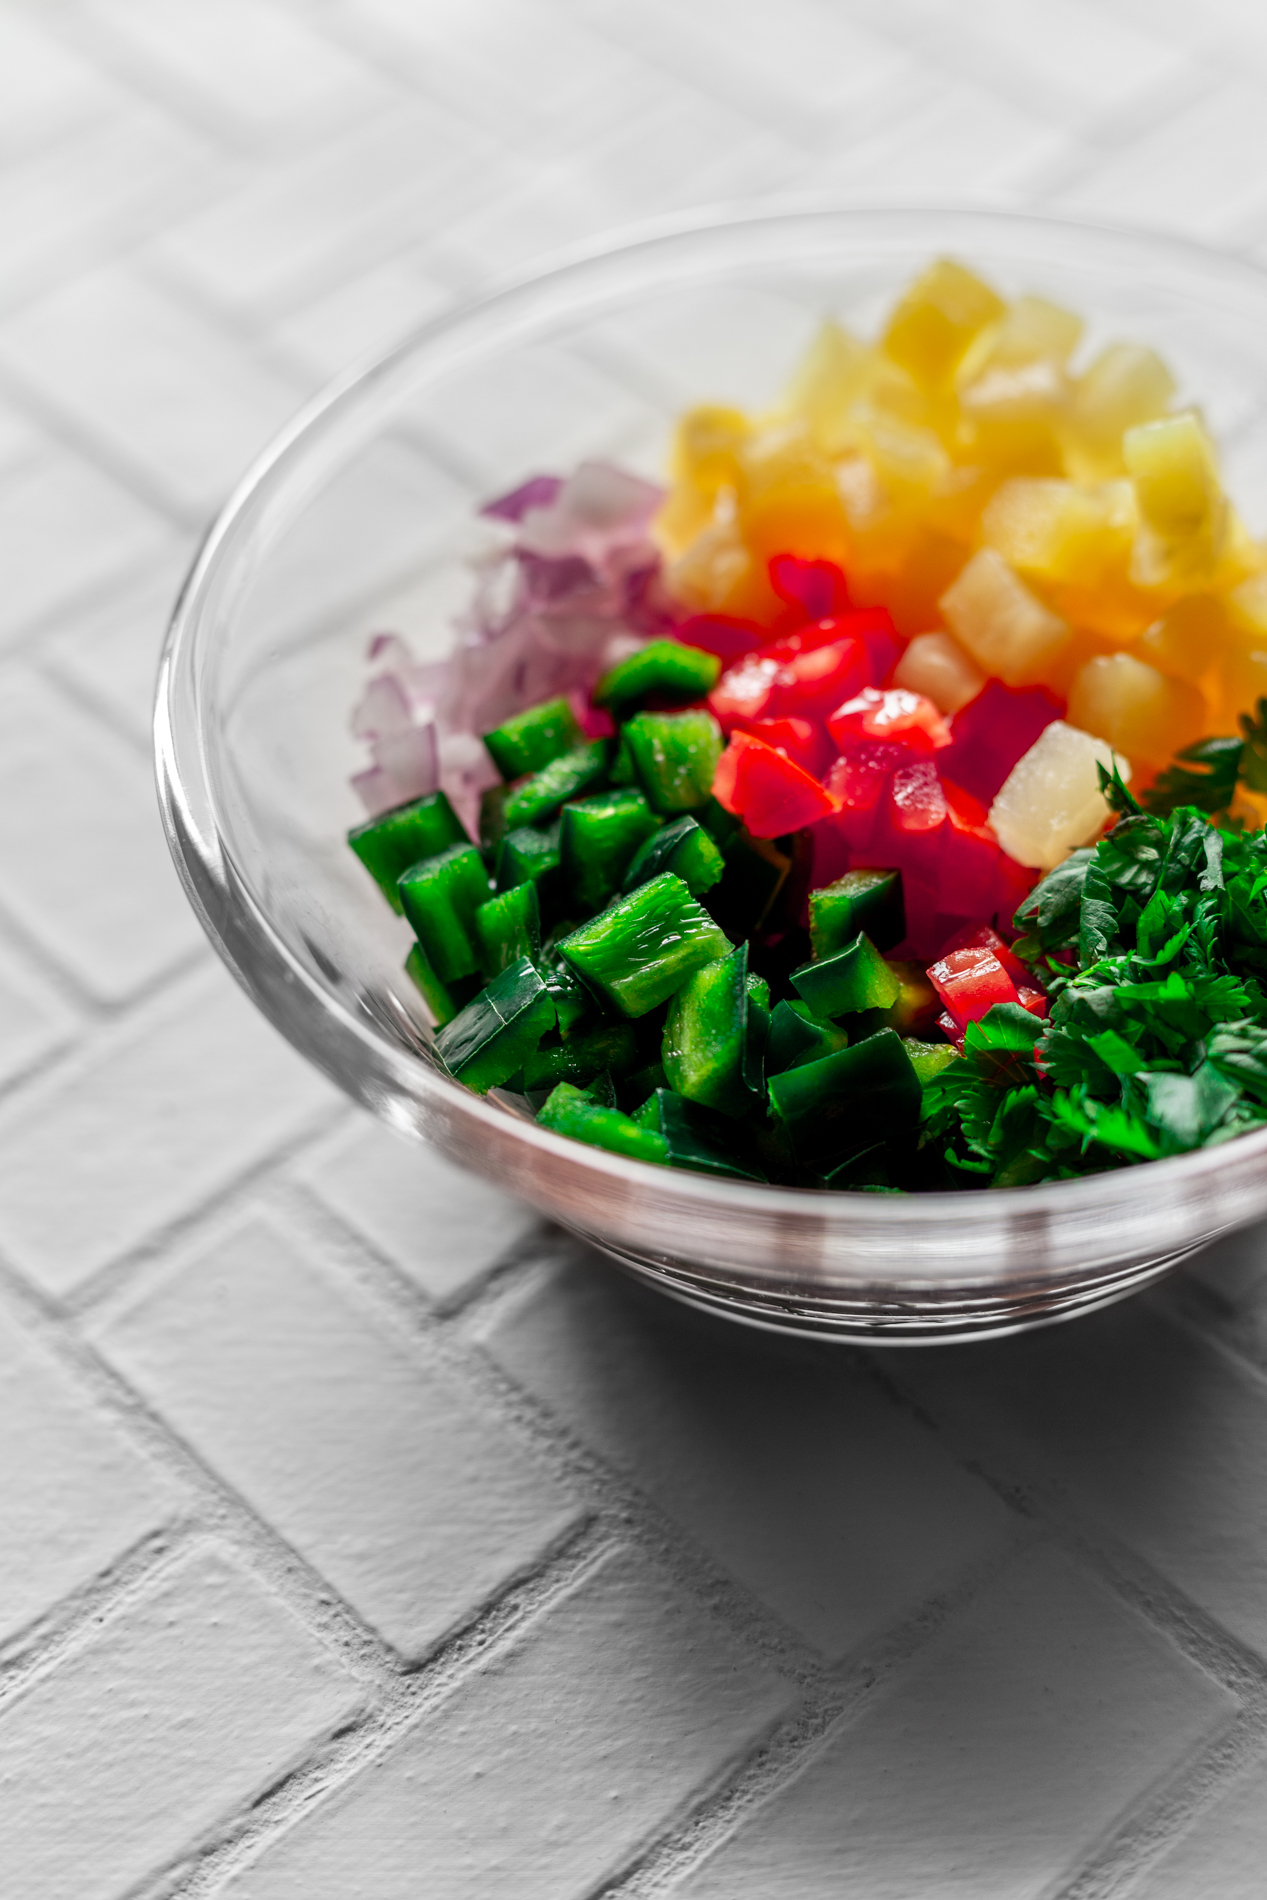 angled view of a bowl of fresh diced produce